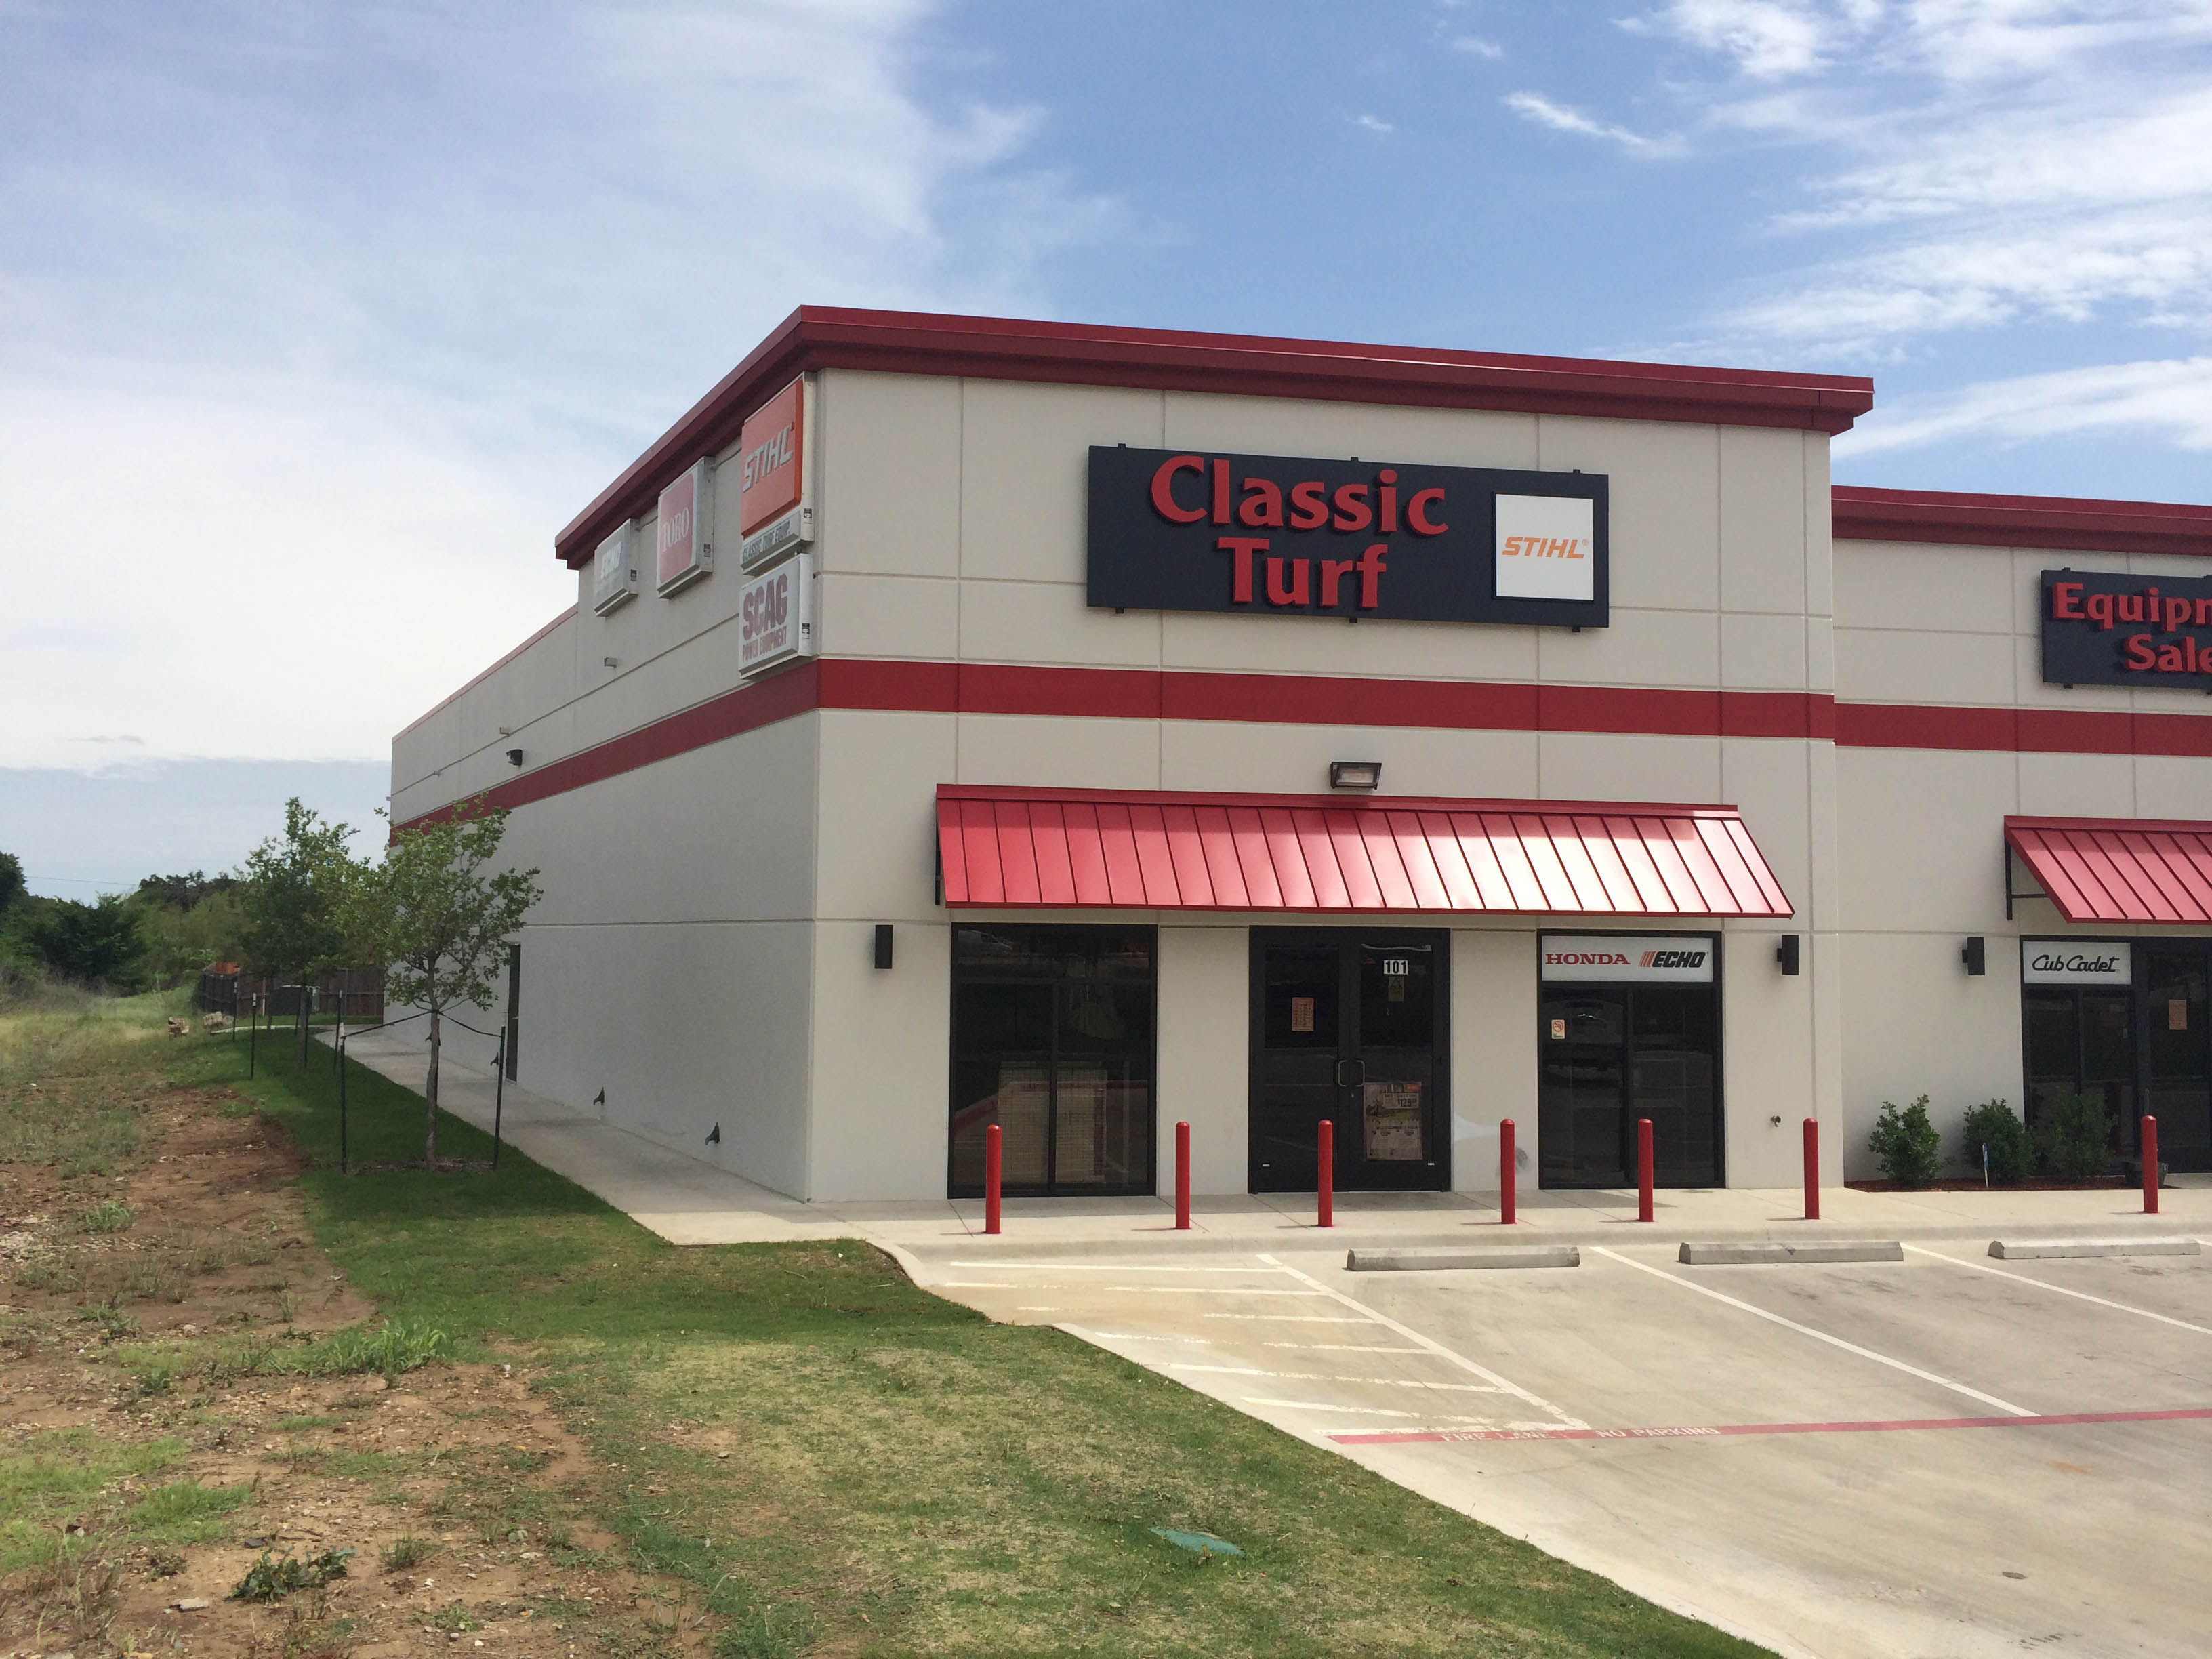 Classic Turf Commercial Construction Exterior View Finished